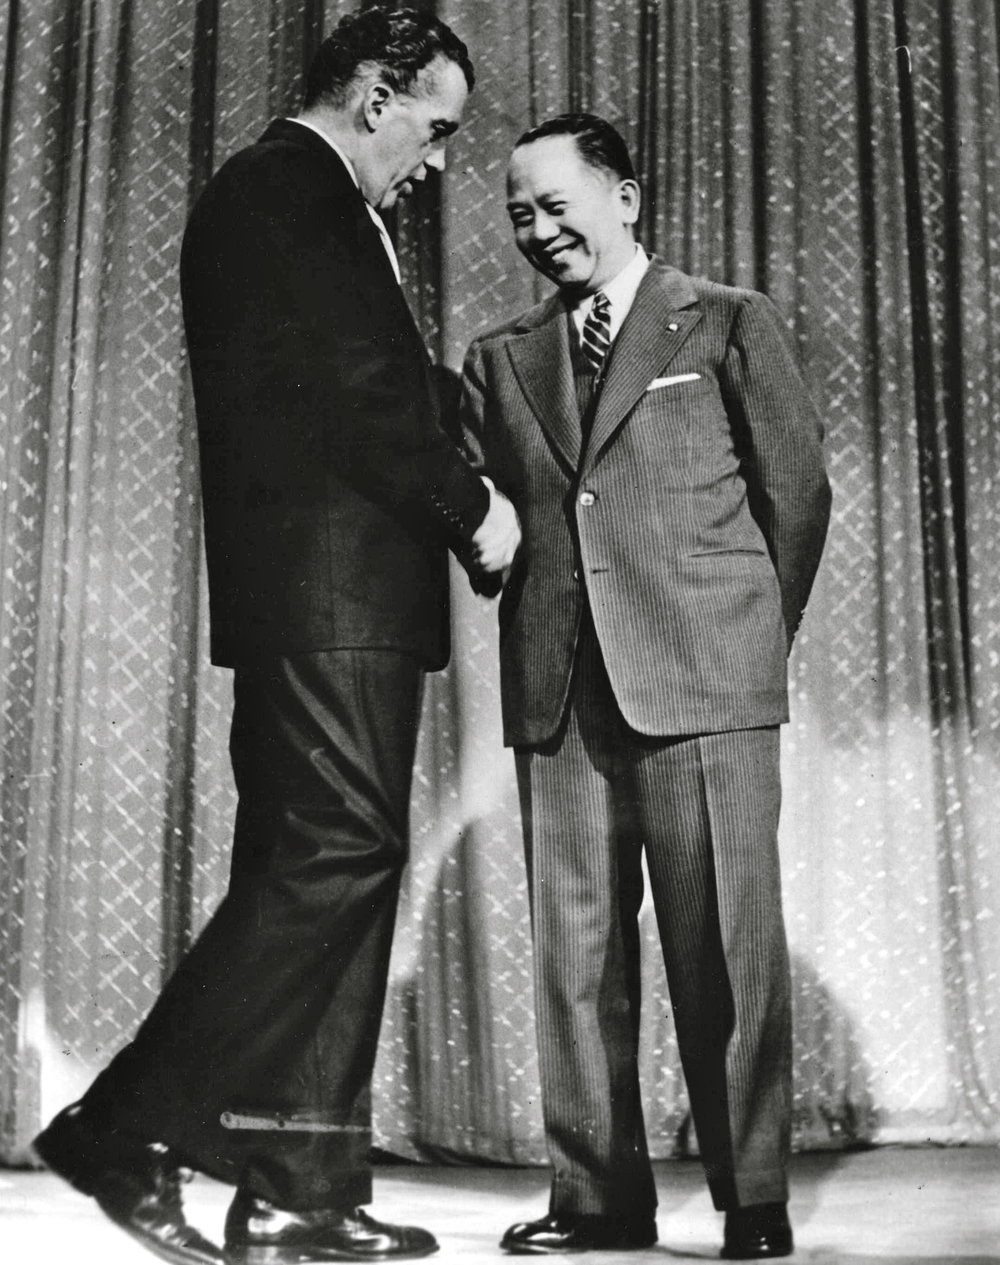 With Ed Sullivan